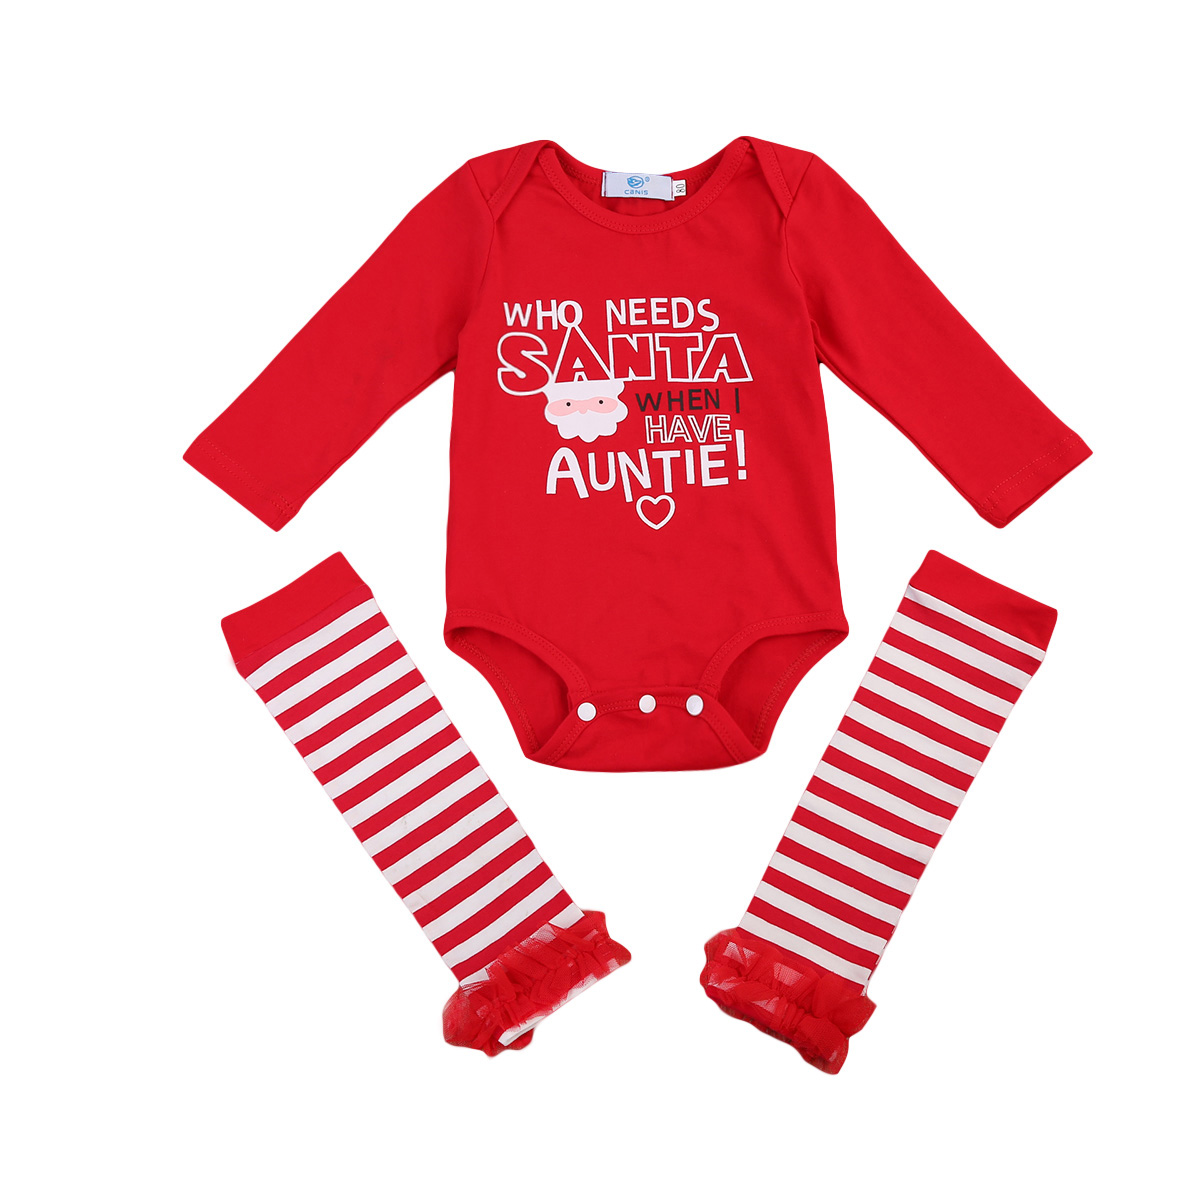 Pudcoco Pretty Newborn Baby Girls Clothes Toddler Cotton Long Sleeve Cute Red Romper Socks Christmas 2pcs Outfits Set Costume UK pudcoco newborn infant baby girls clothes short sleeve floral romper headband summer cute cotton one piece clothes